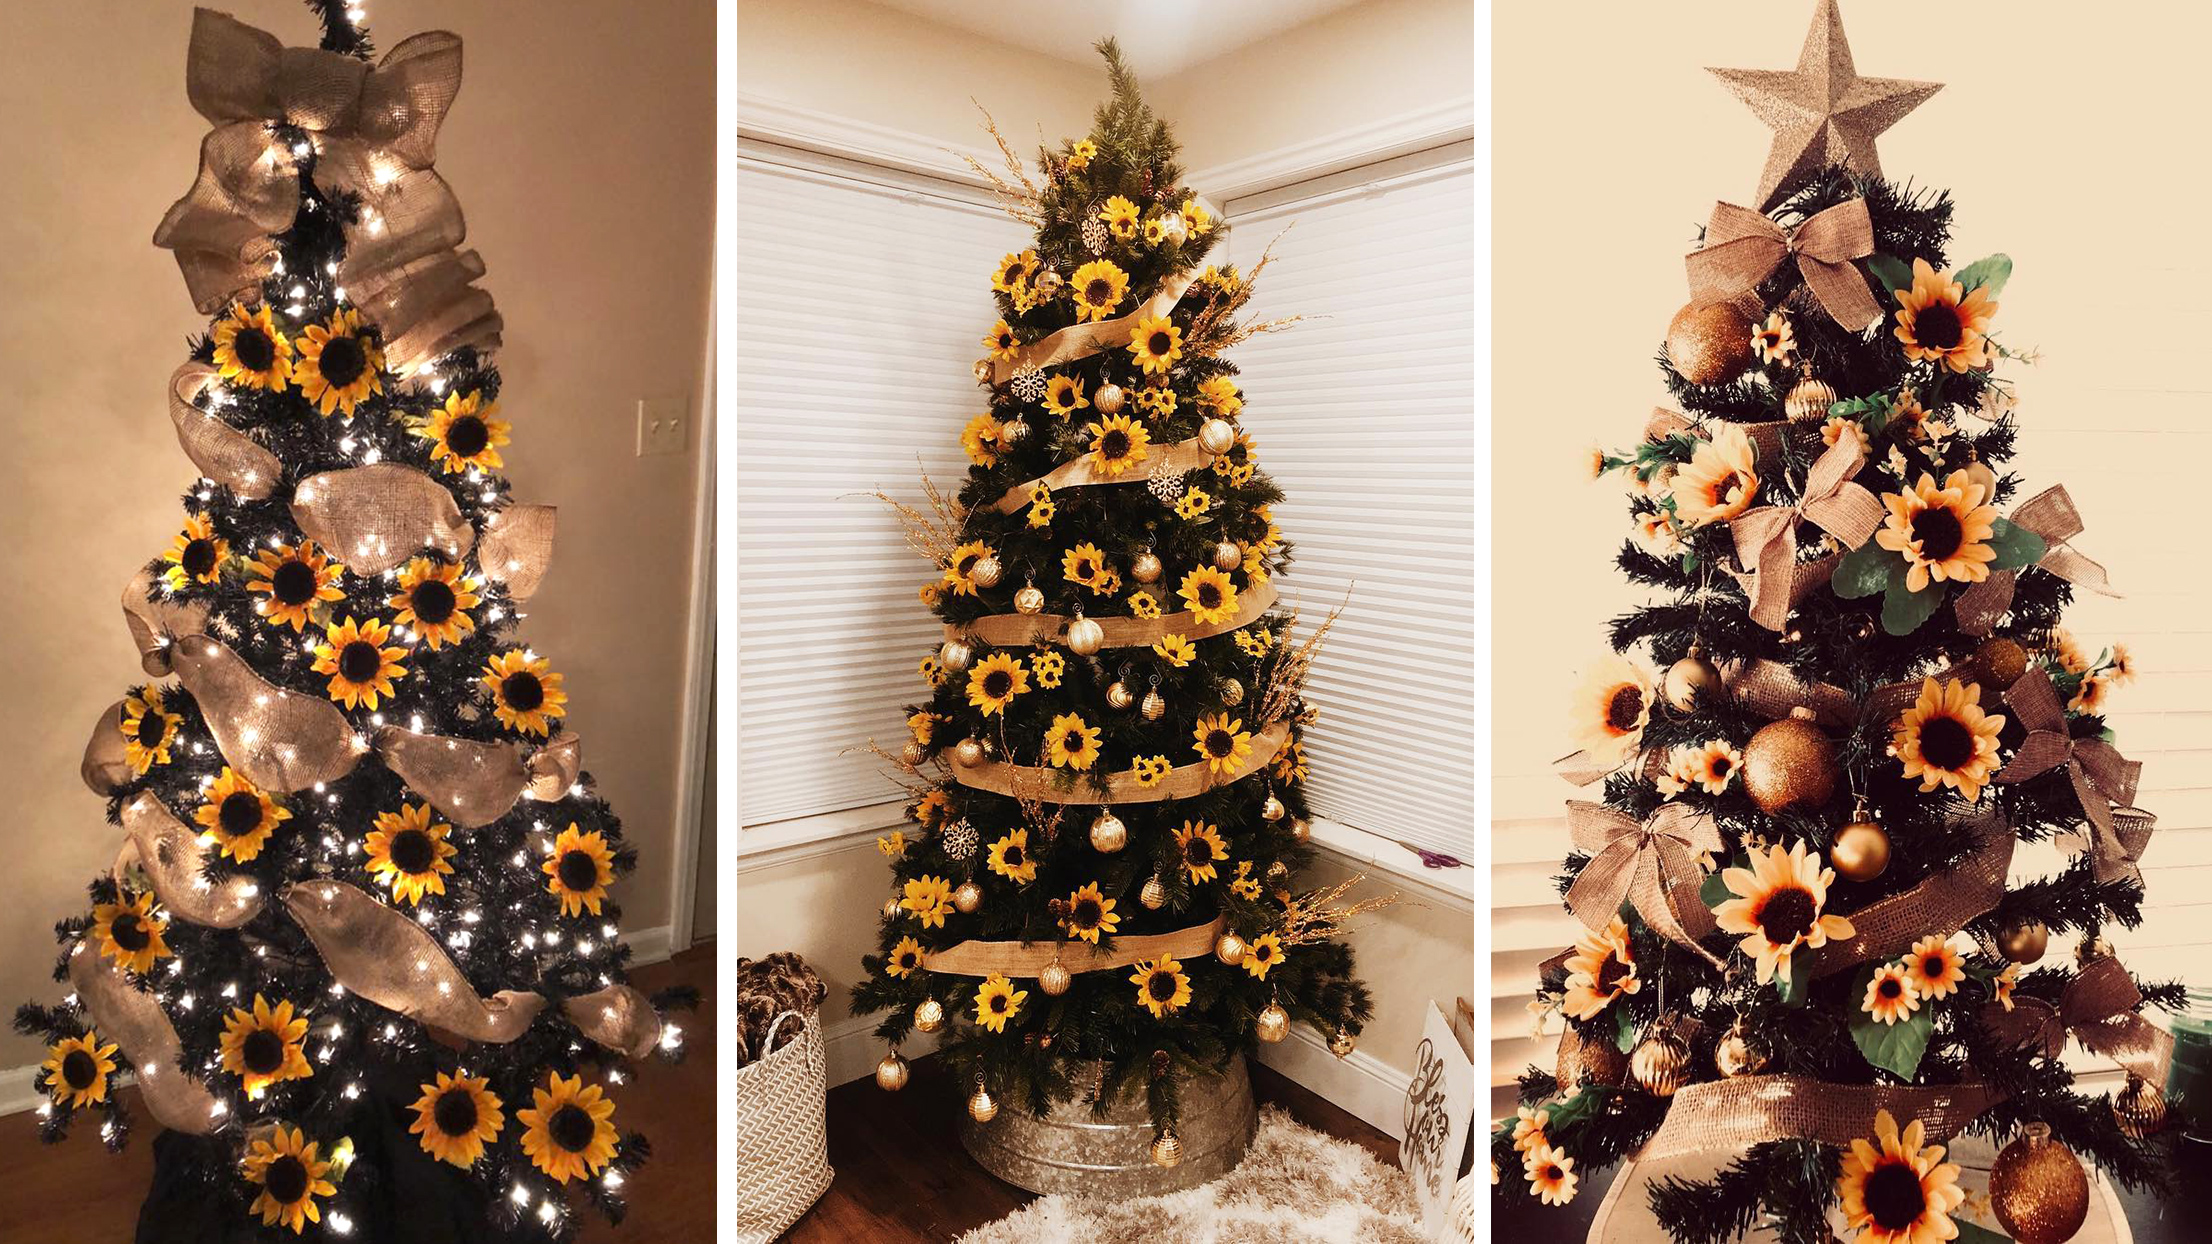 According To Pinterest, Sunflower Trees Are The Latest